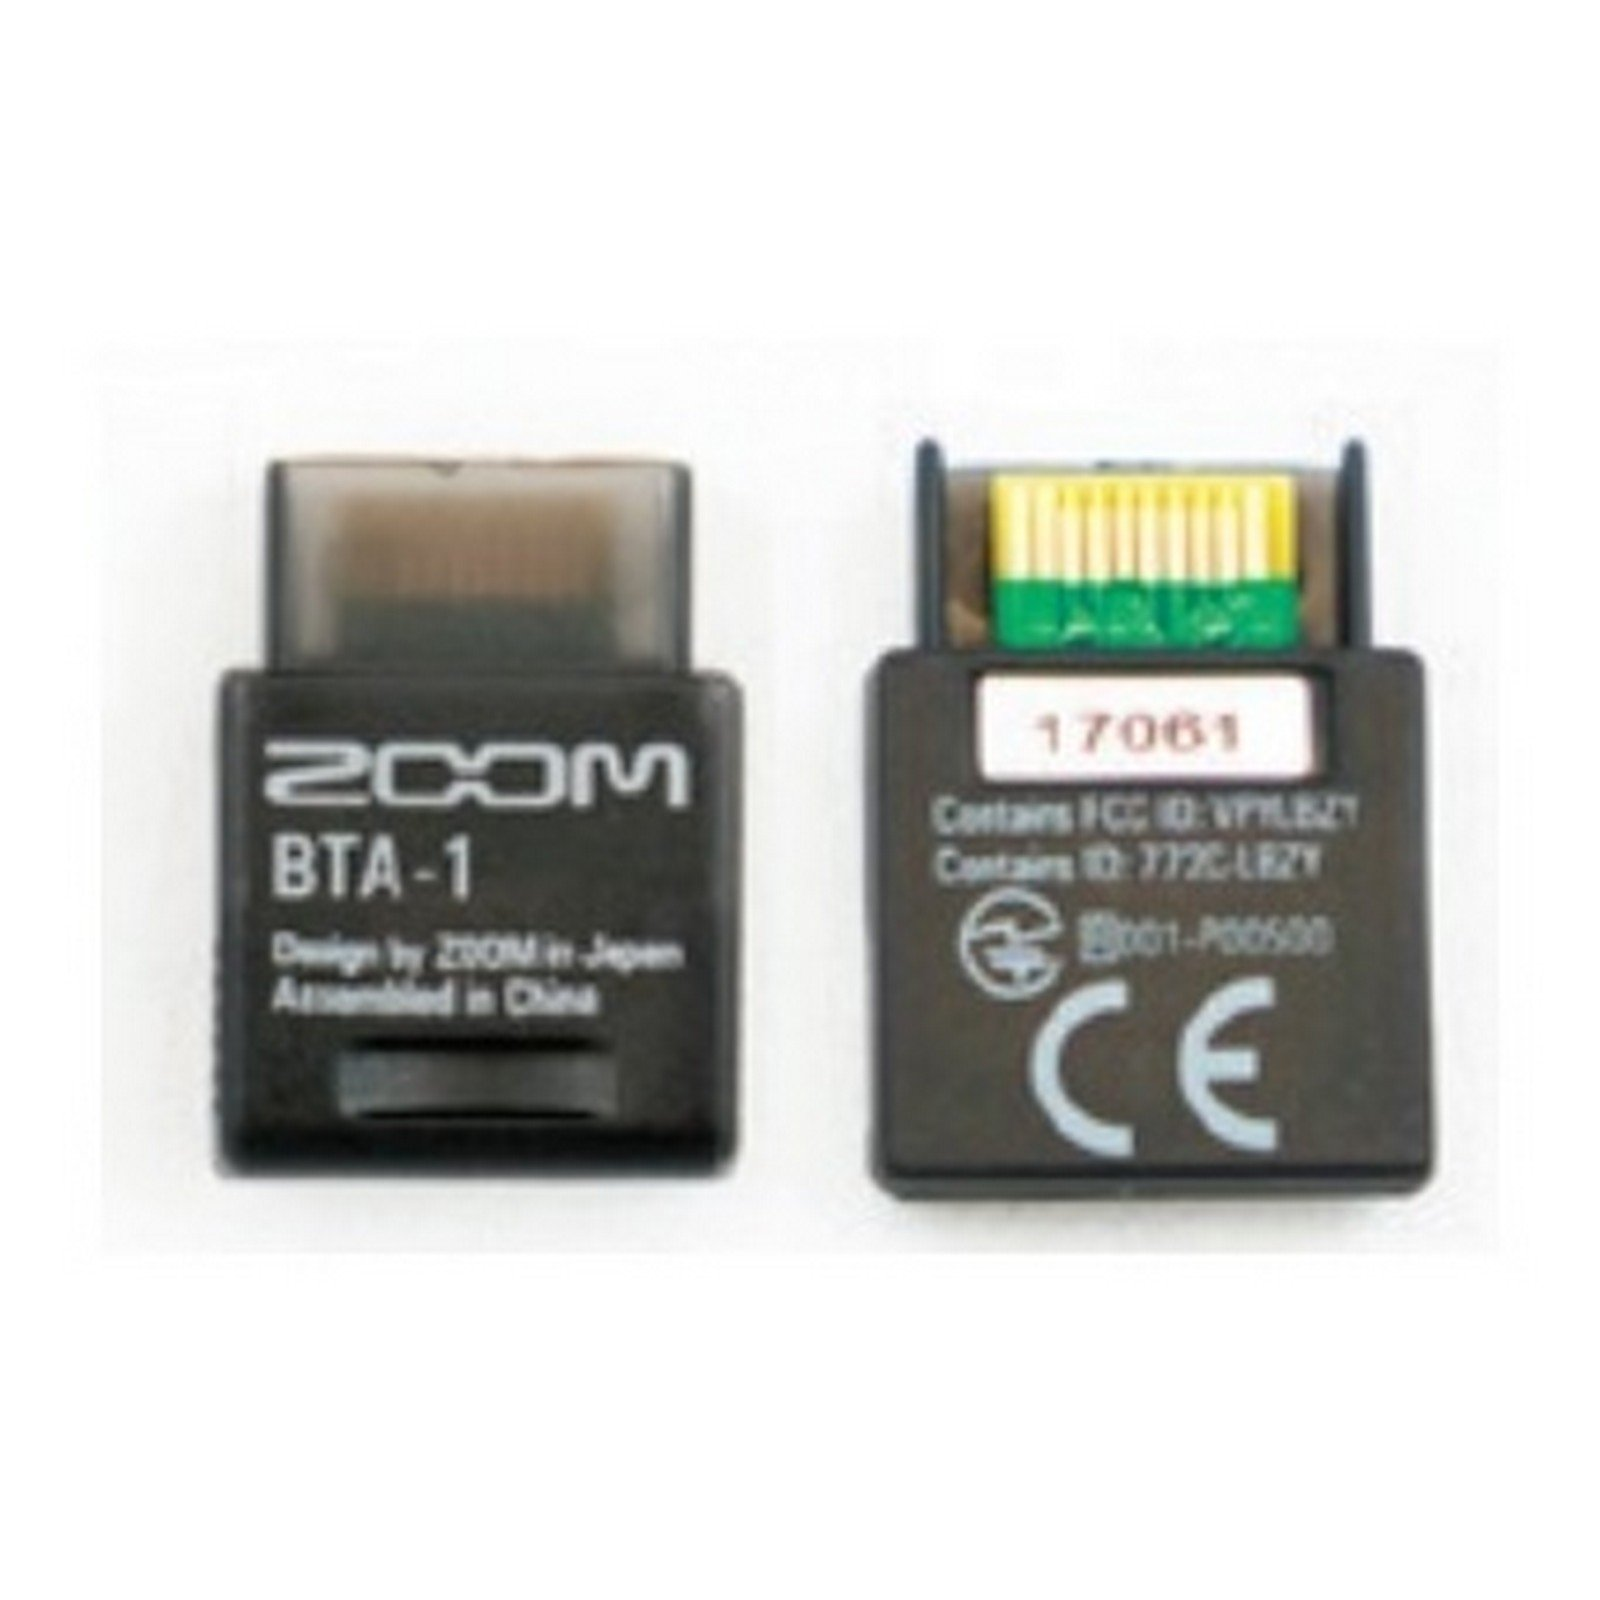 Zoom BTA-1, Wireless Bluetooth Adapter for ARQ AR-48 by Zoom